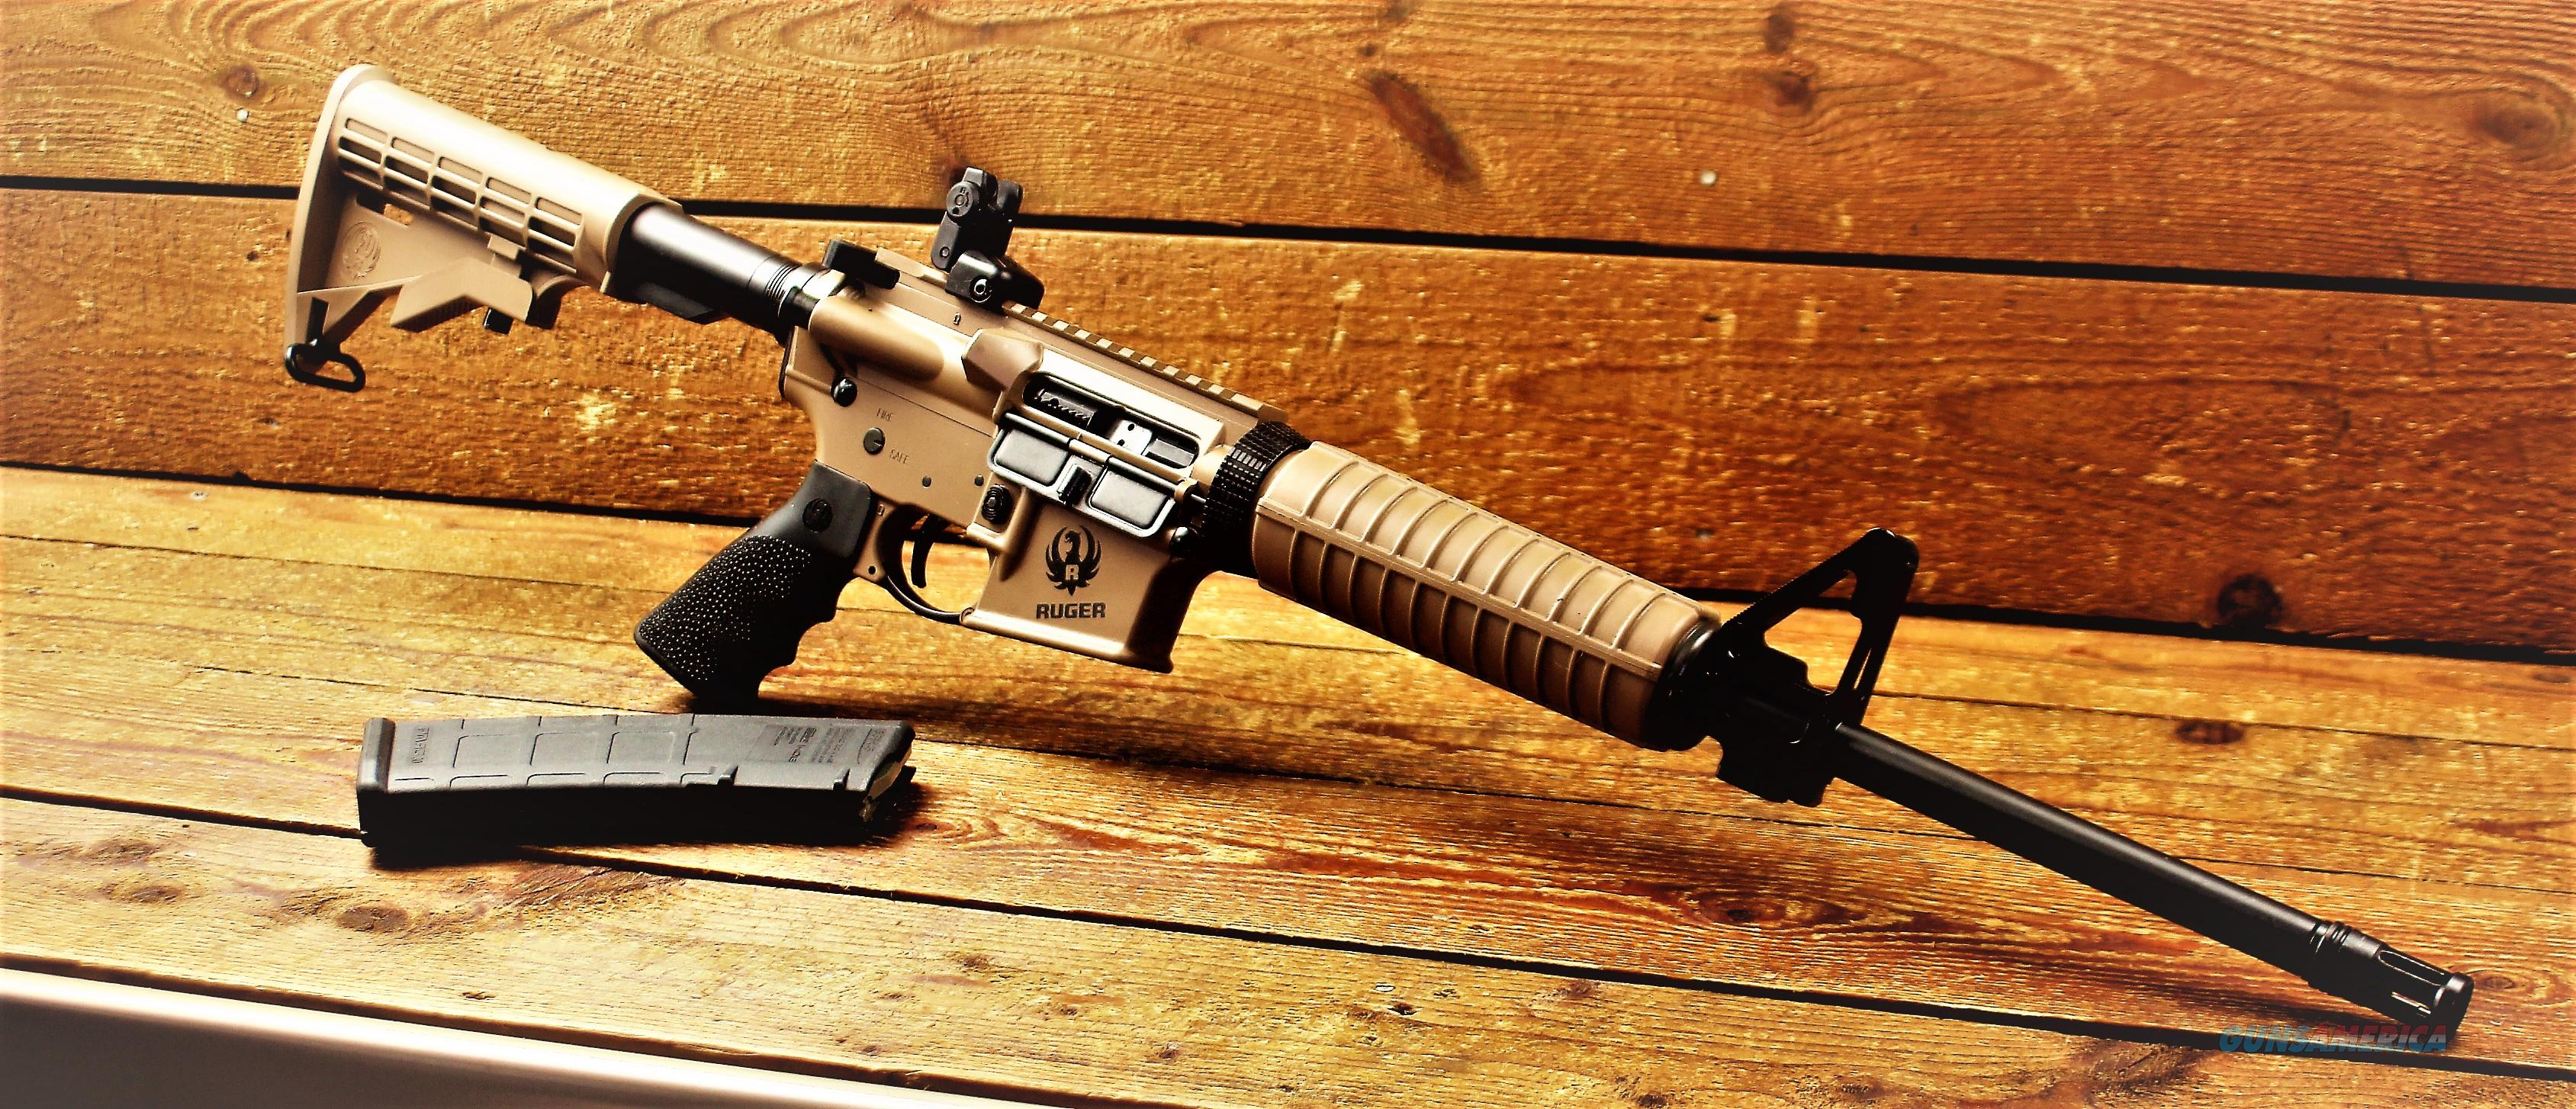 EASY PAY $44 DOWN LAYAWAY Ruger Barrett Brown  Exclusive  FDE Cerakote Components 8503 AR-556 Rifle Ar-15 Ar15 5.56 NATO / 223 Remington 30rd Magpul M4 Synthetic 6 Position Adjustable Stock  Guns > Rifles > Ruger Rifles > SR Series